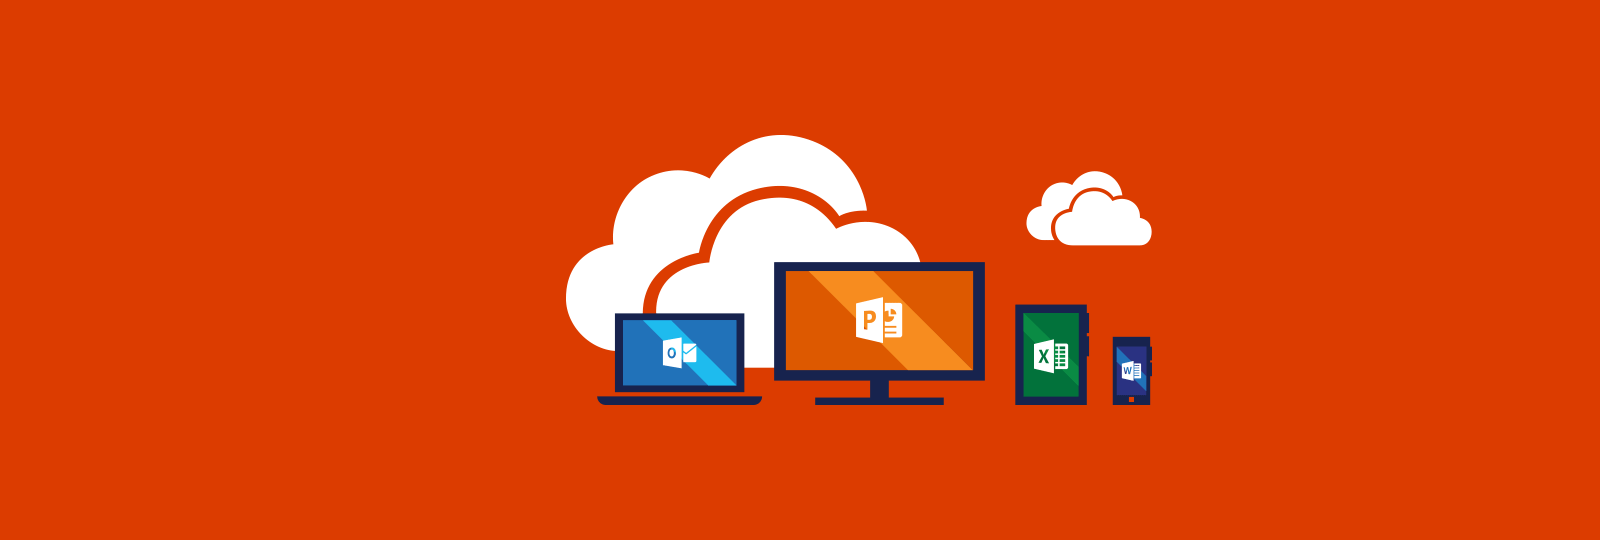 Buy Office 365, get 1 TB OneDrive file storage.